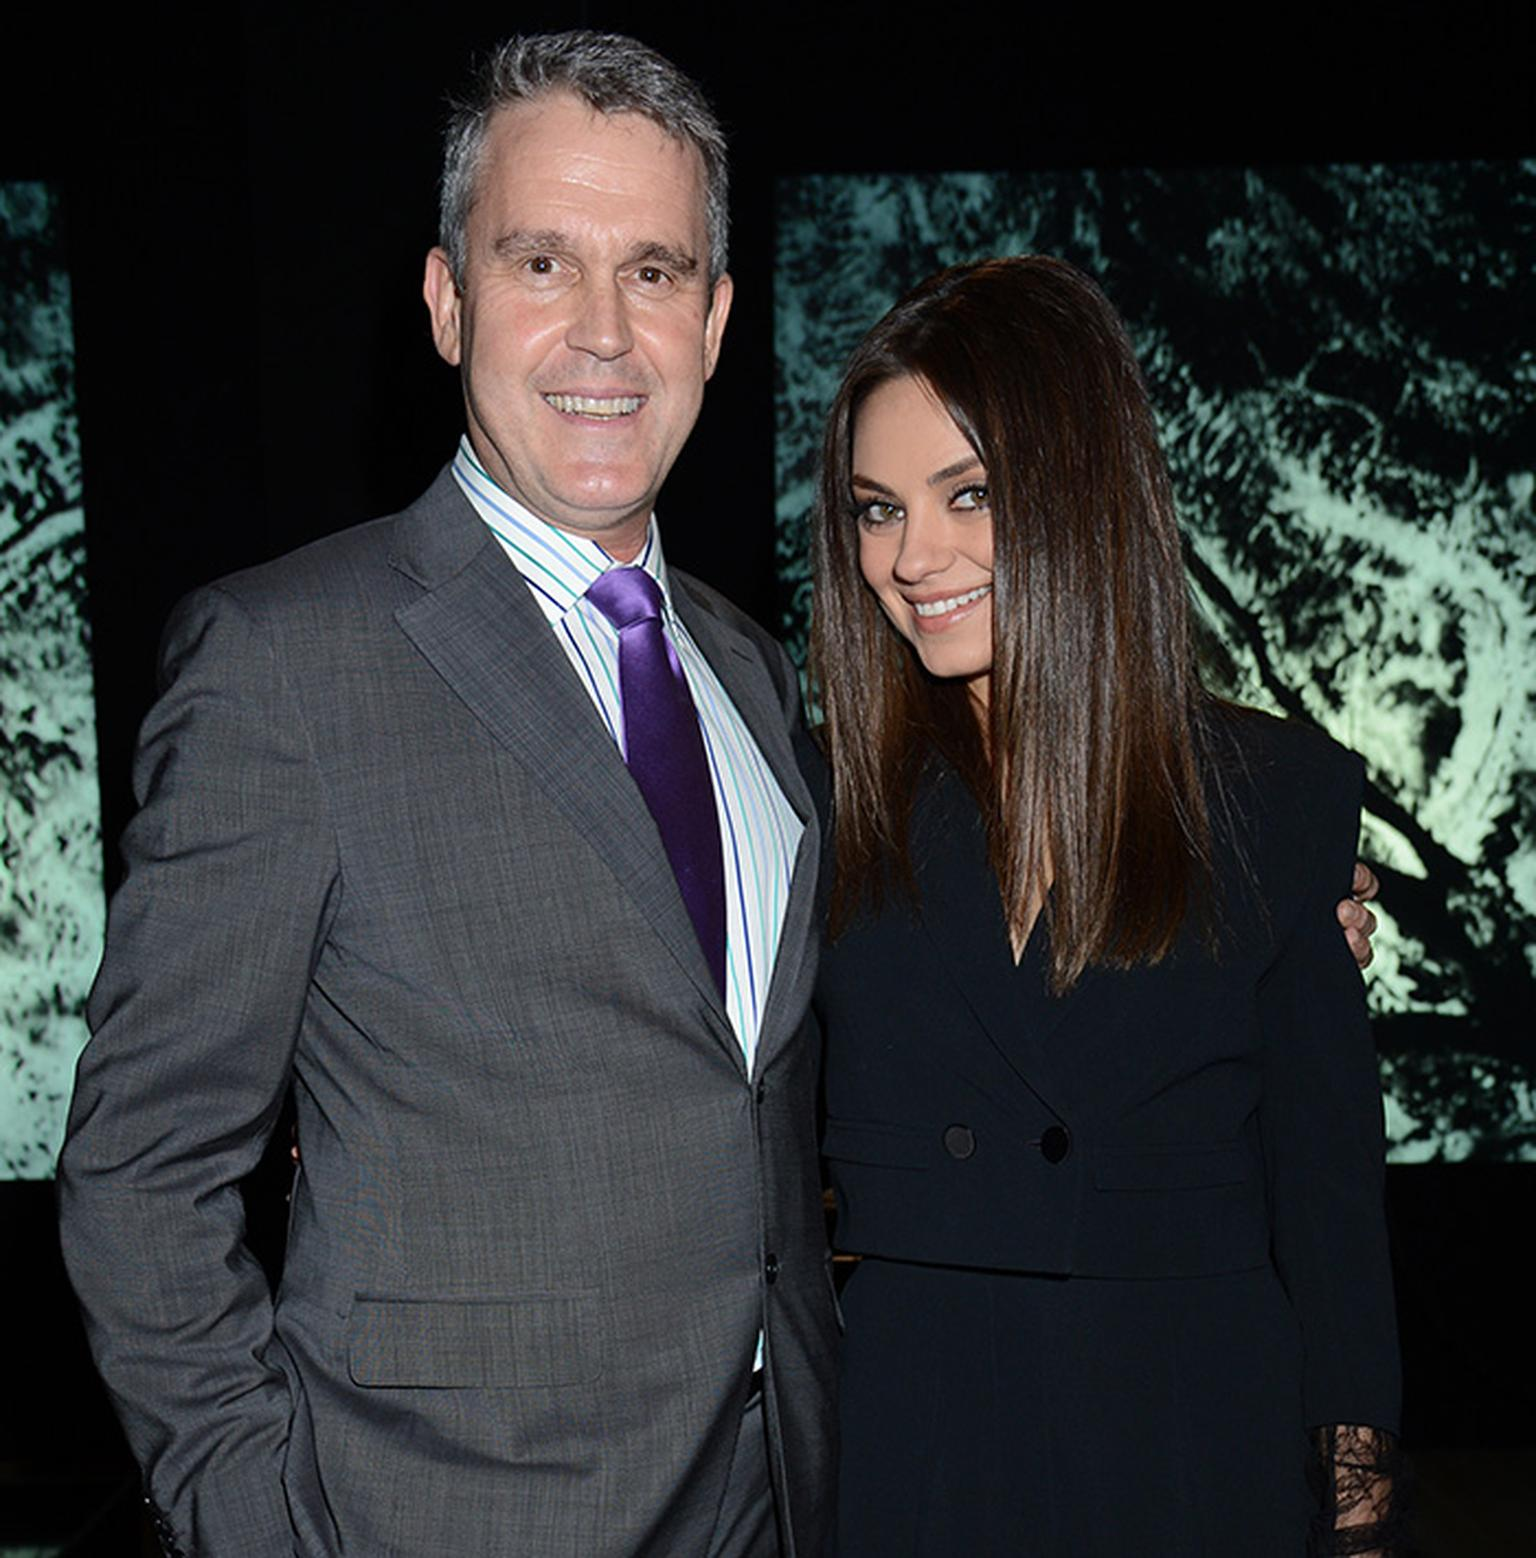 Gemfields-London-Launch-Ian-Harebottle-CEO-of-Gemfields-with-Mila-Kunis-March-2013.jpg